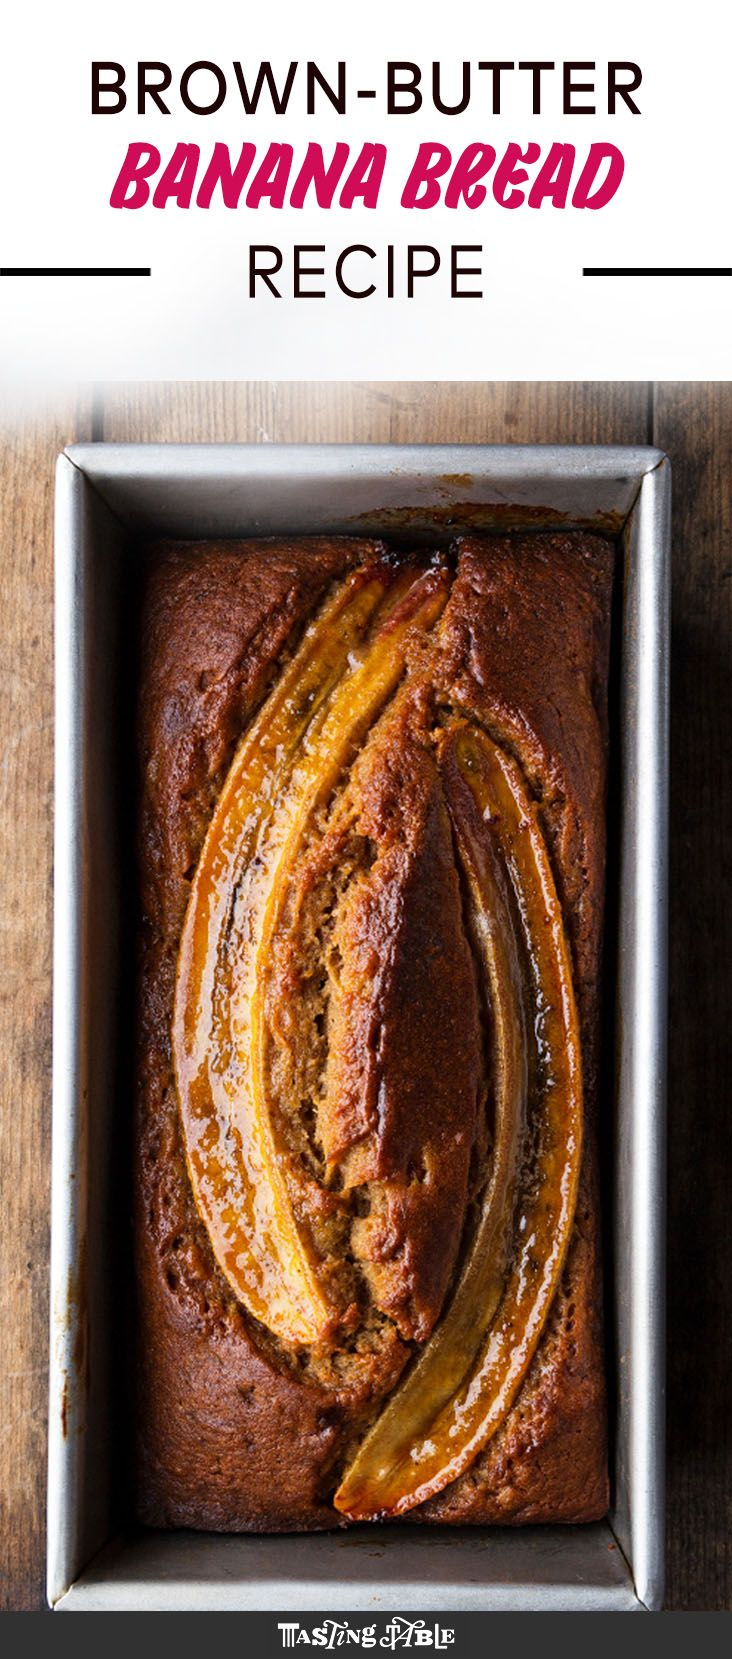 This recipe is bananas, b-a-n-a-n-a-s